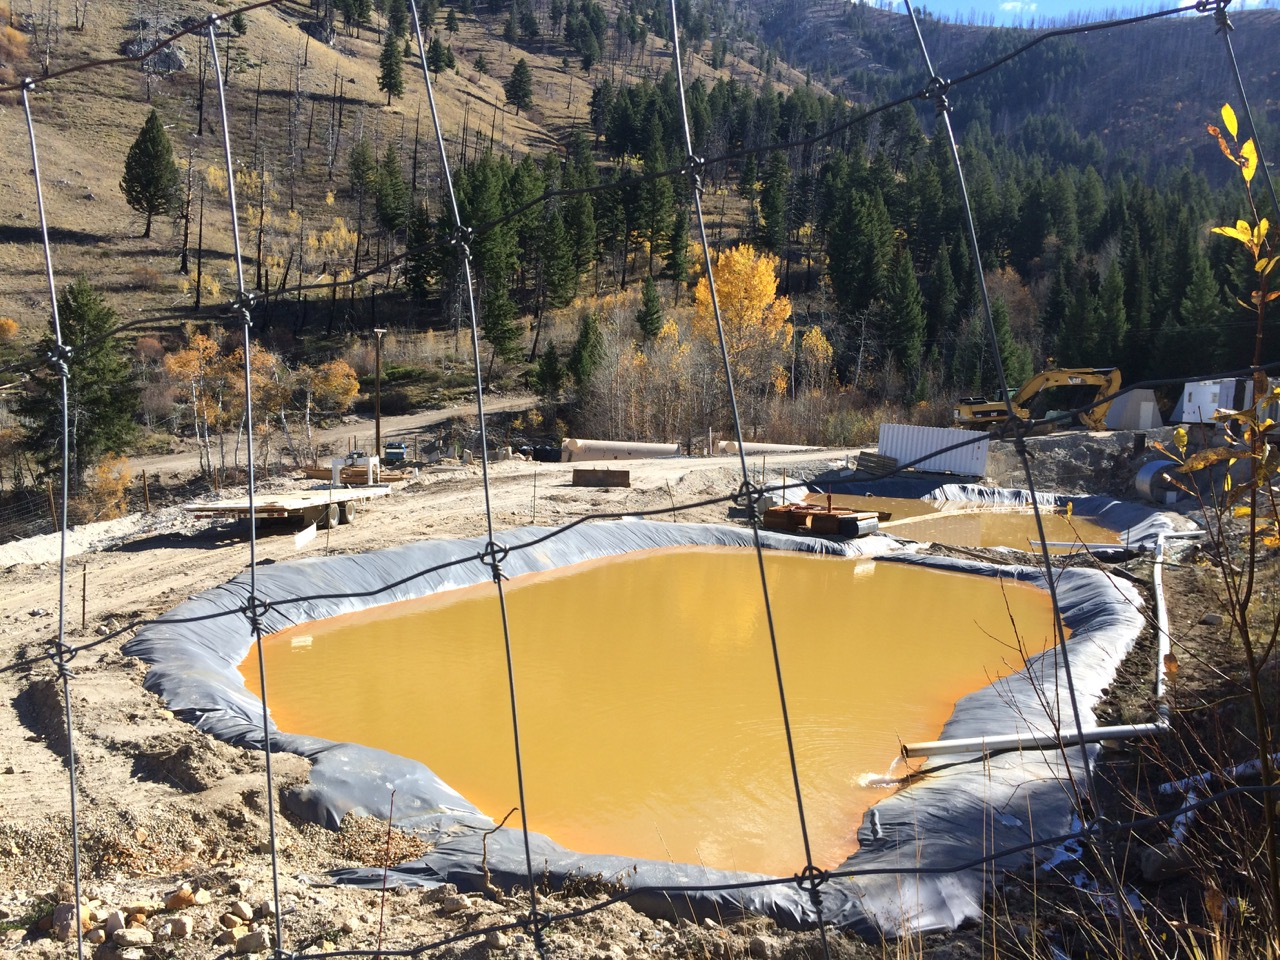 This is a photo of Atlanta Gold's current filtration system at the adit site, taken by Staff Attorney Bryan Hurlbutt in 2014.